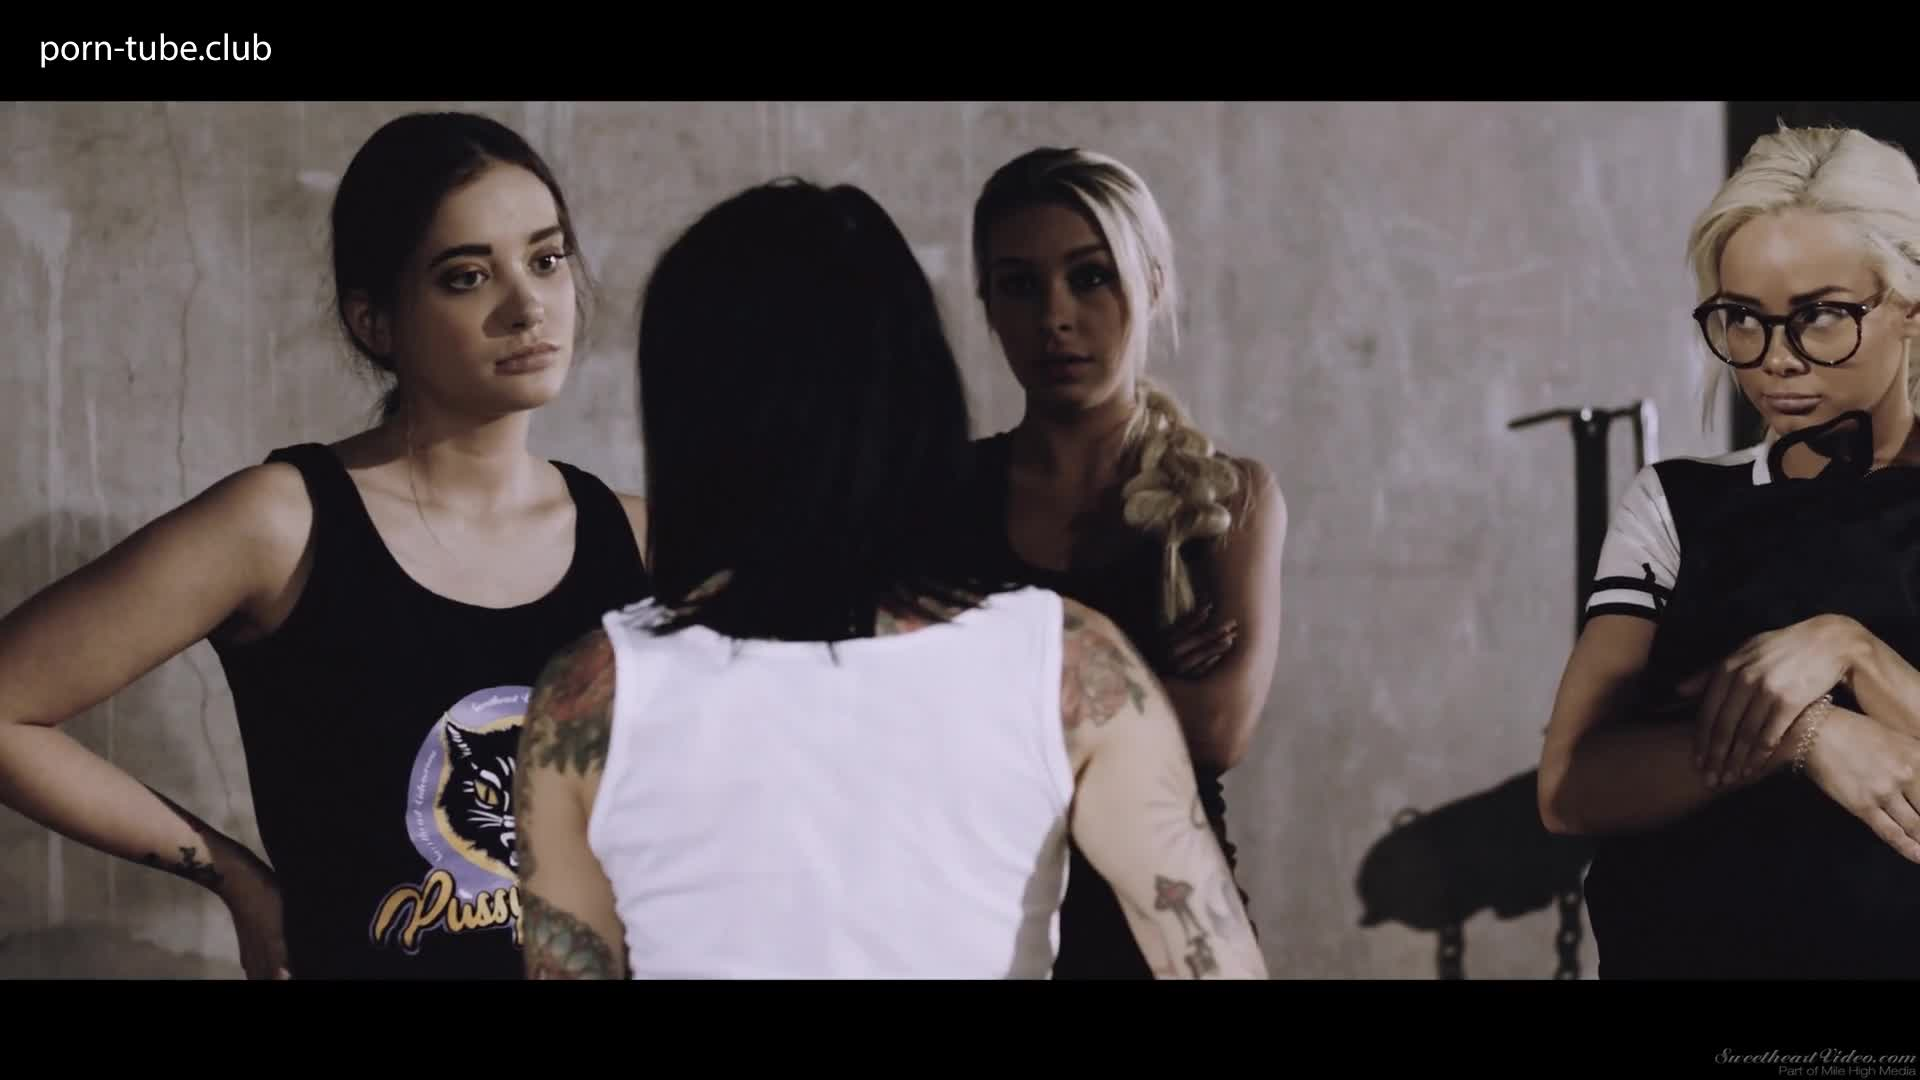 SweetheartVideo 18.09.19 Joanna Angel And Stoya Exs And Ohs